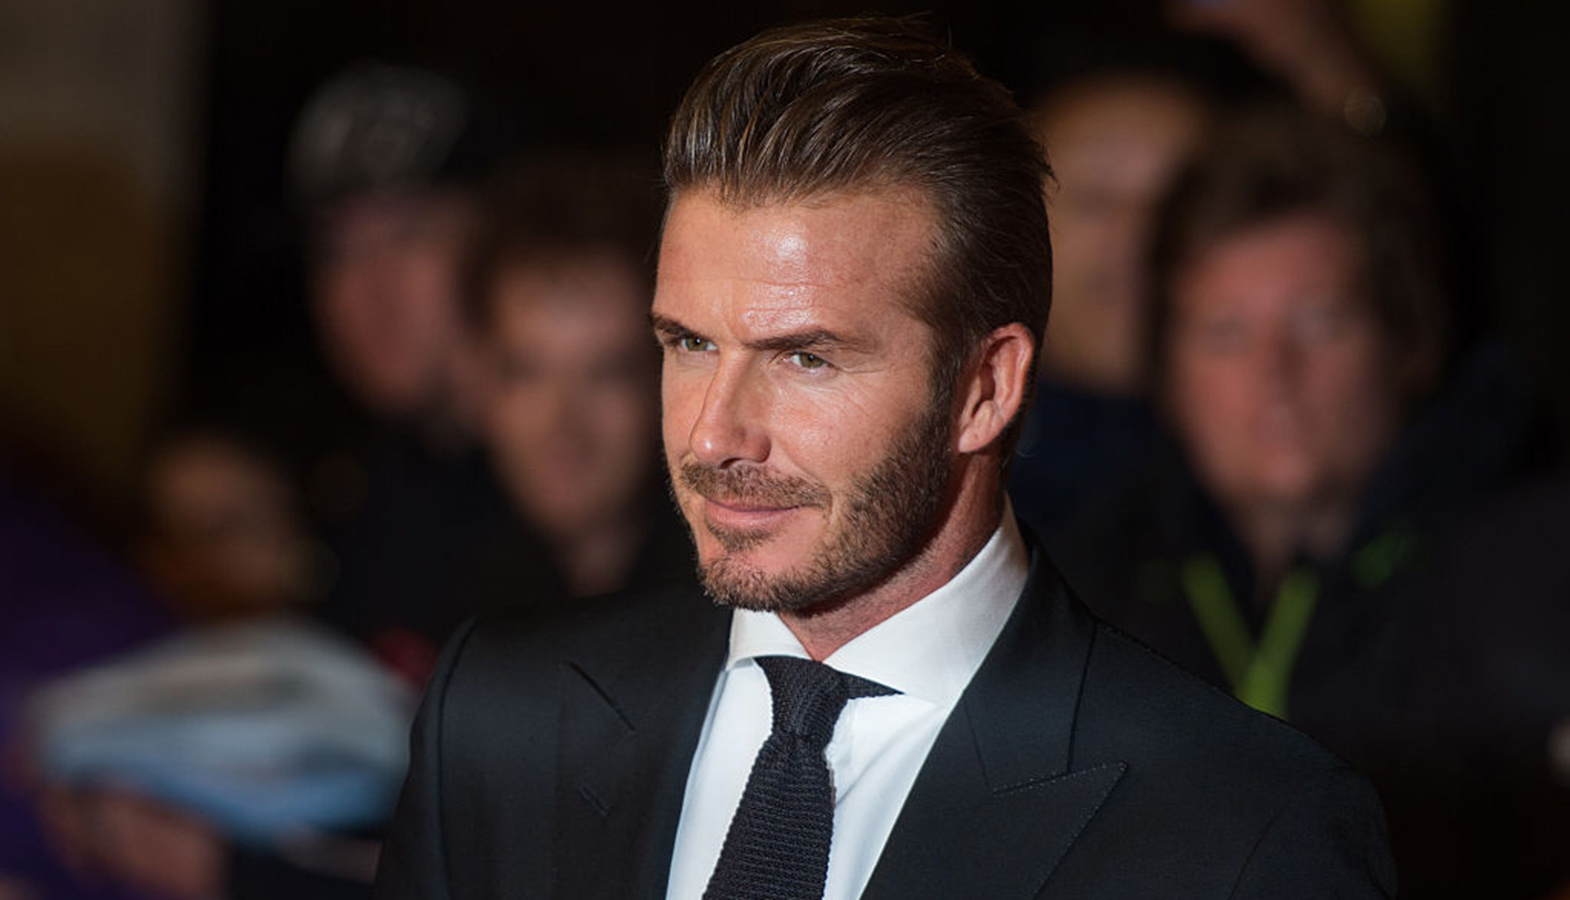 David Beckham's Guild Esports Company Intends To Conduct An IPO In London For 20 Million Pounds